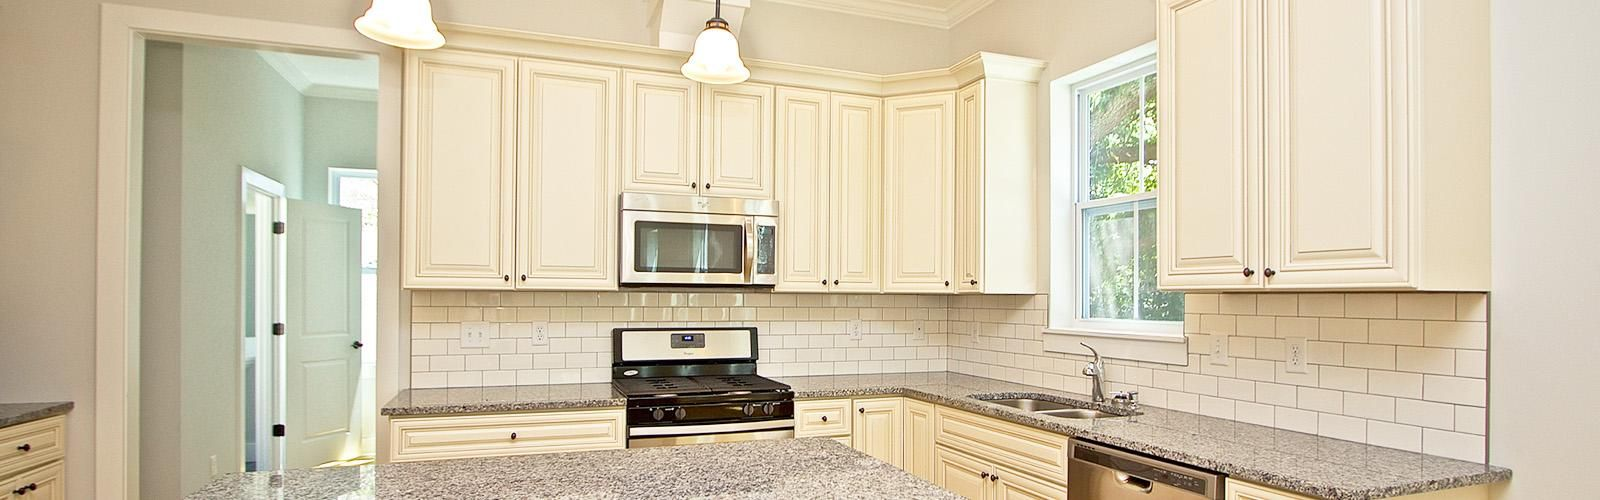 Home Wholesale Cabinets Warehouse In 2020 Used Kitchen Cabinets Kitchen Cabinets For Sale Discount Kitchen Cabinets